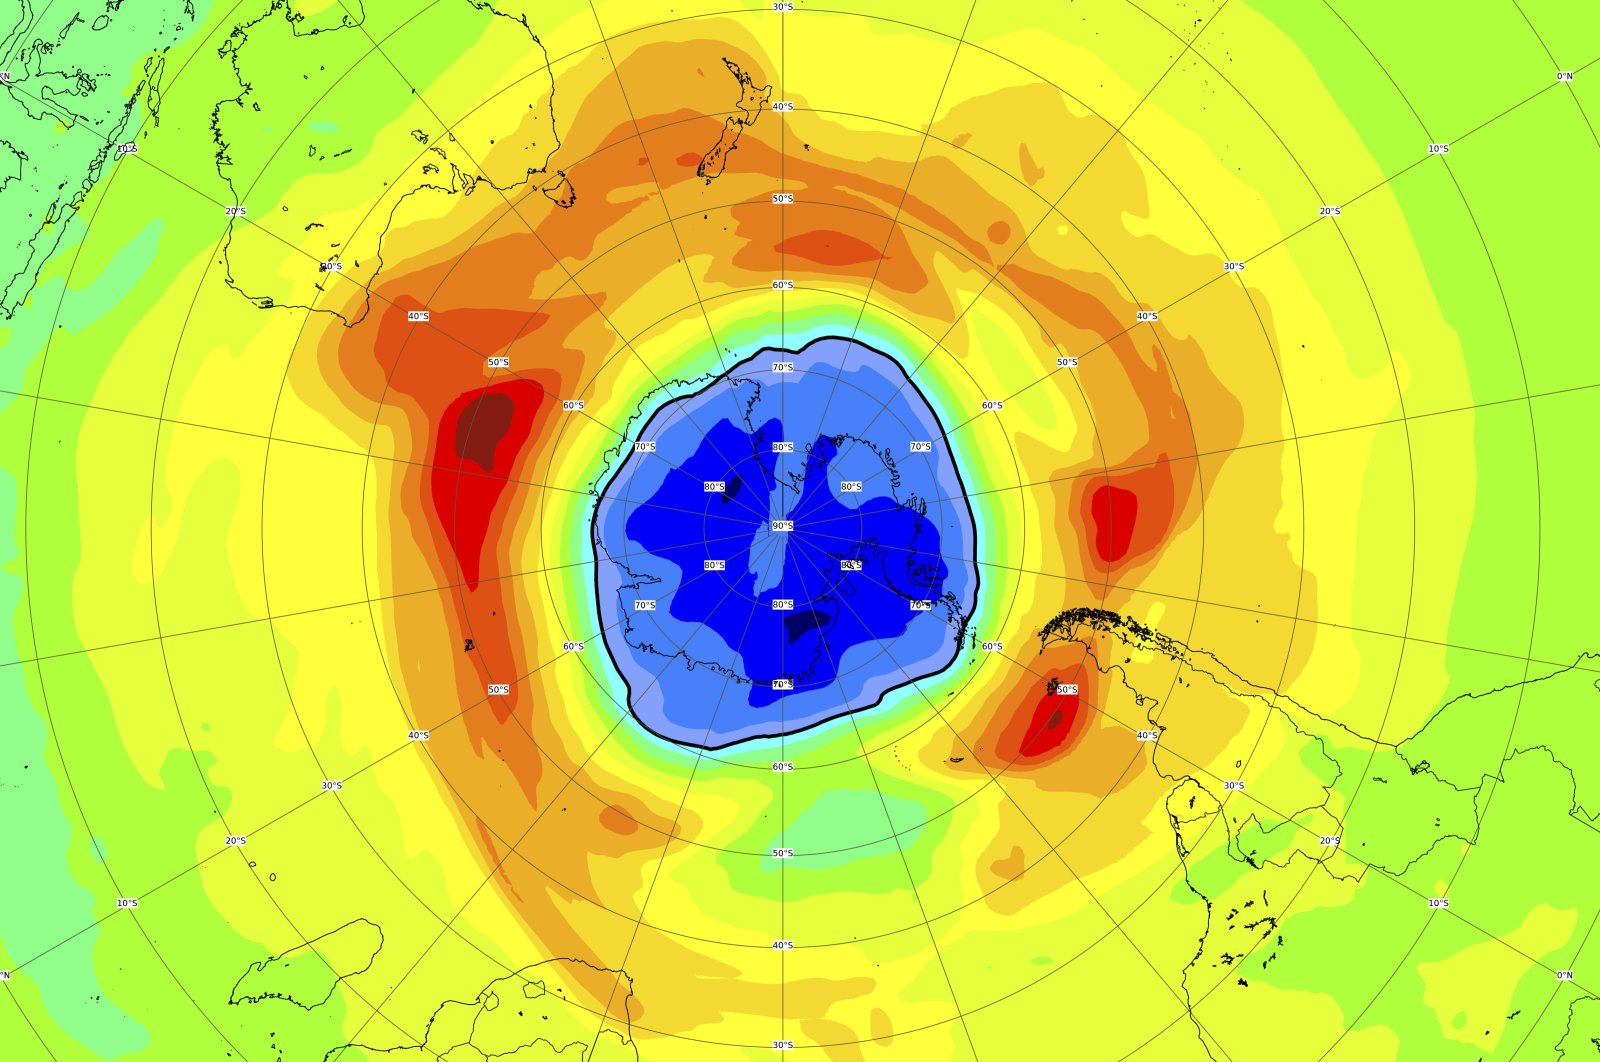 This image, provided on Thursday, Sept. 16, 2021 by the European Space Agency (ESA) shows a map of the ozone hole over the South Pole, Sept. 16, 2021. (AP Photo/European Space Agency, ESA)